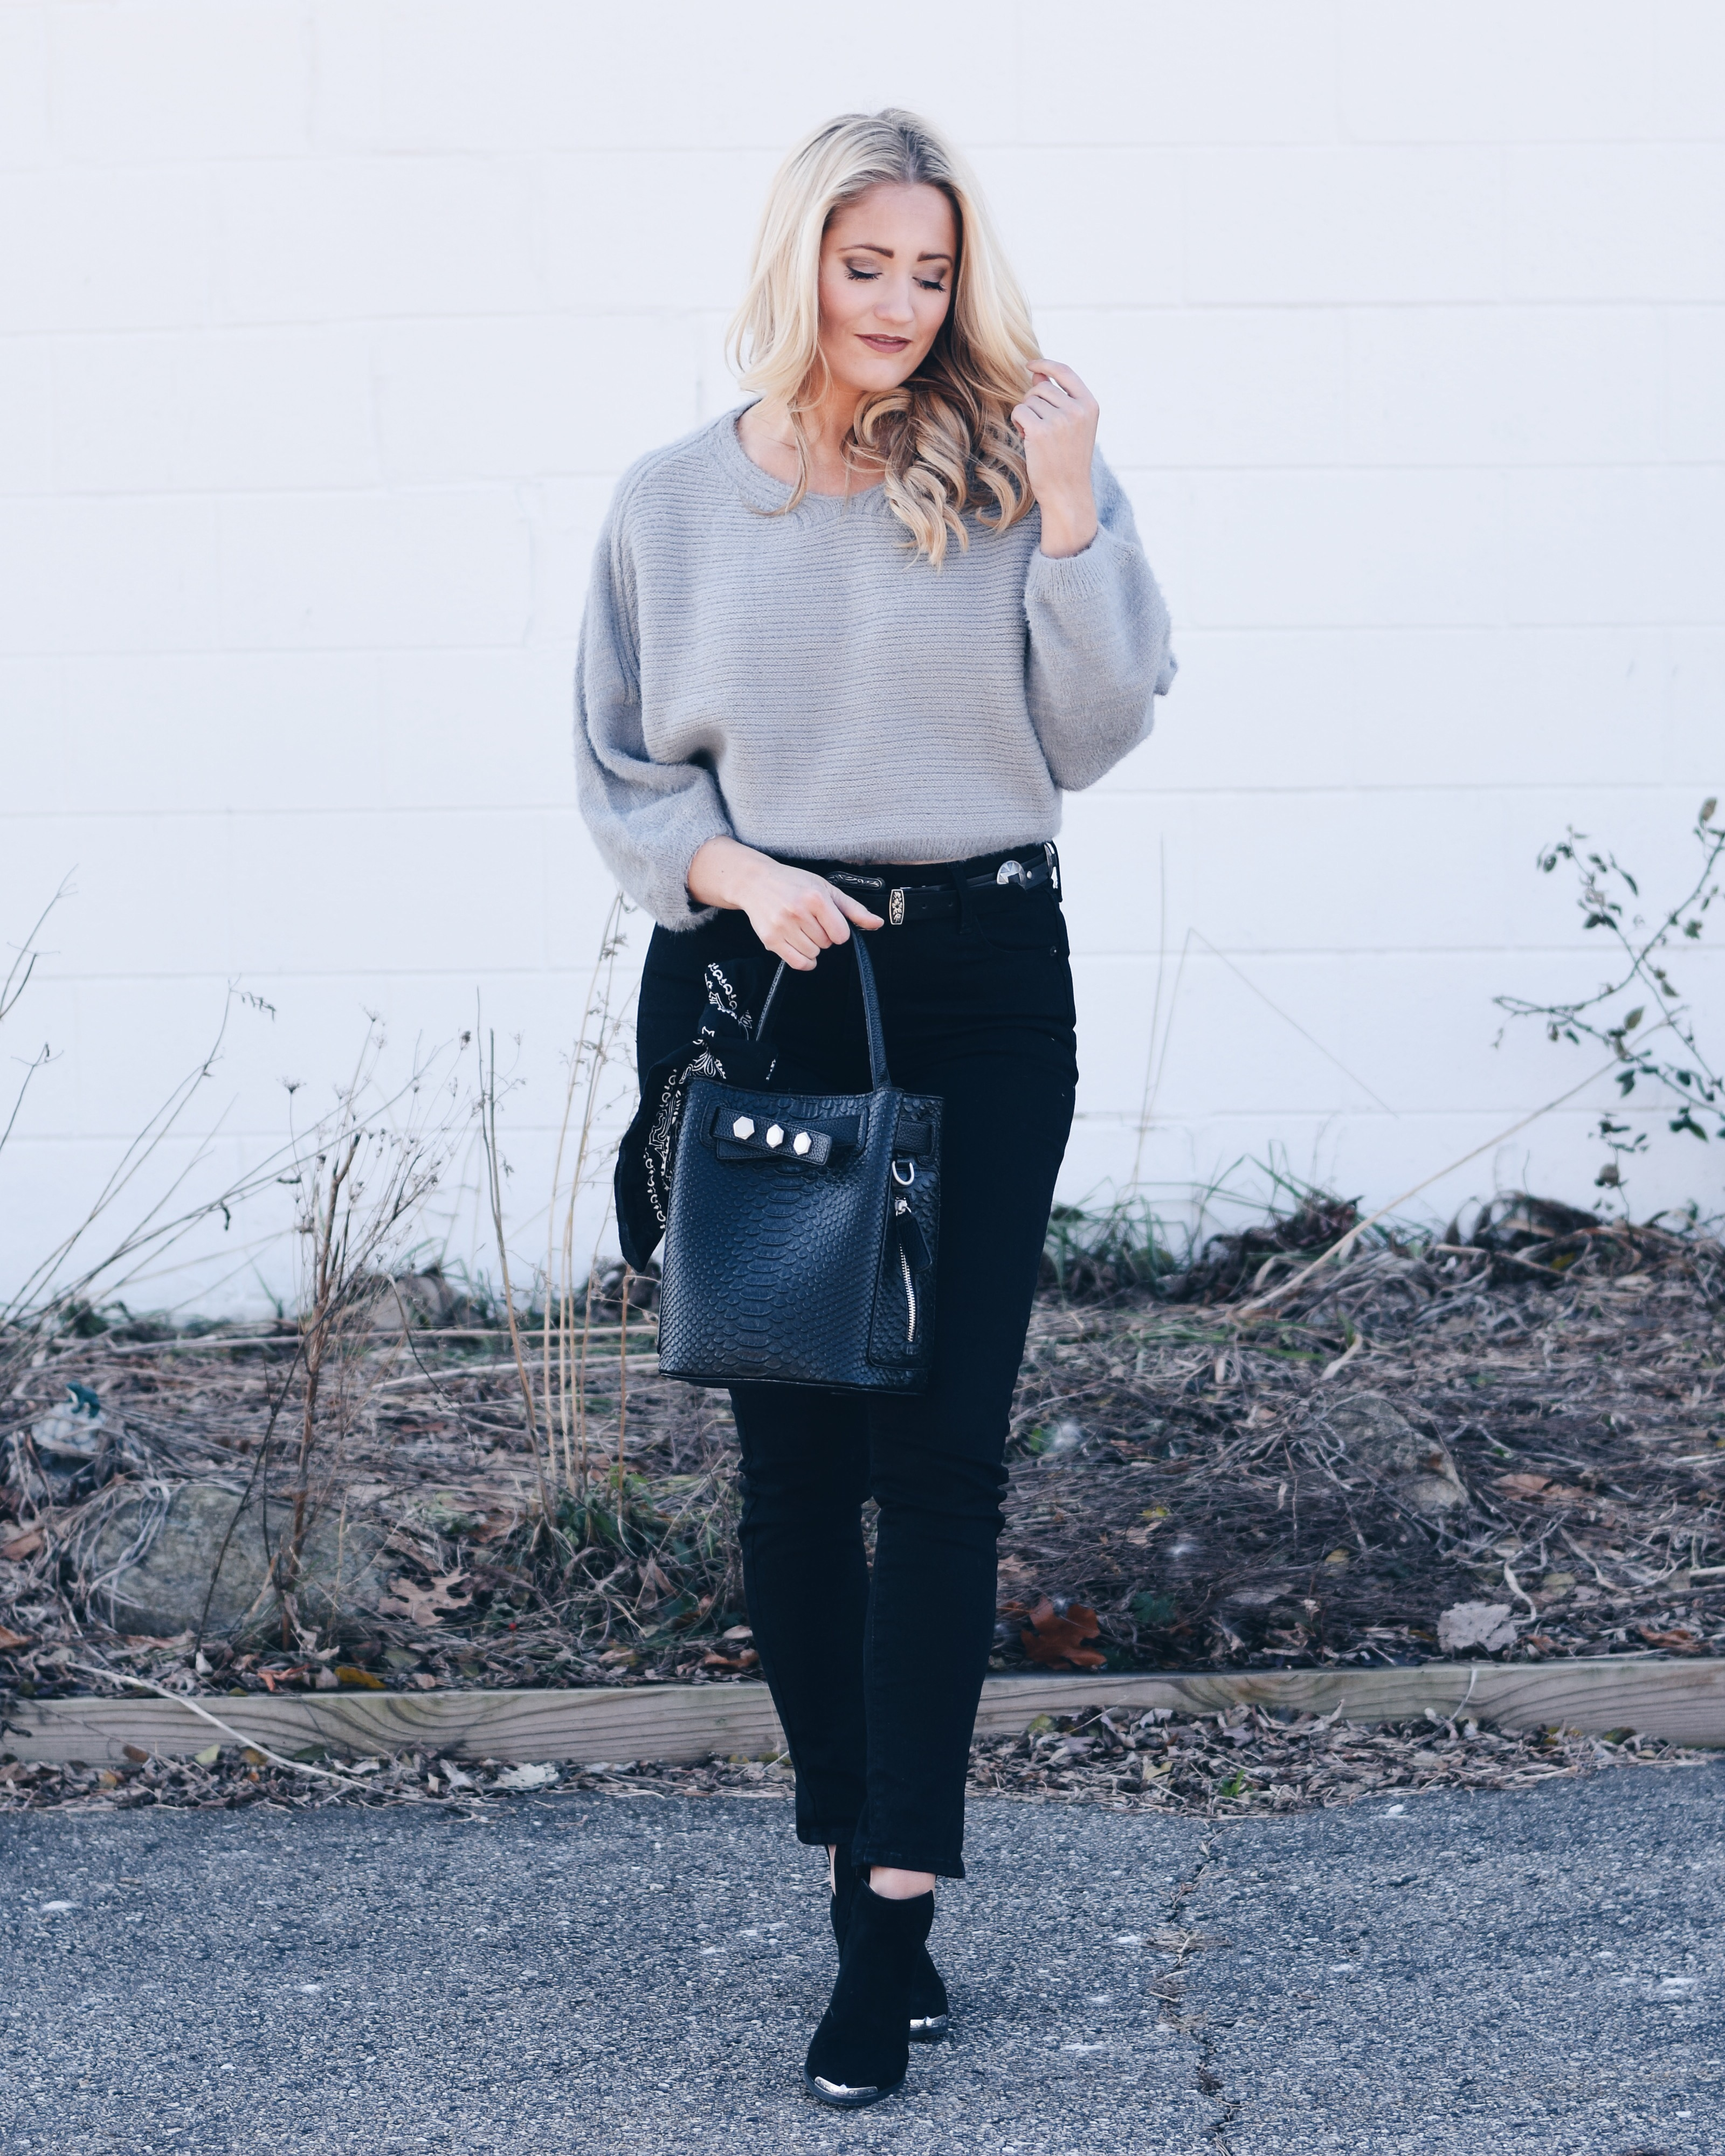 fuzzy batwing sweater with black jeans and western booties